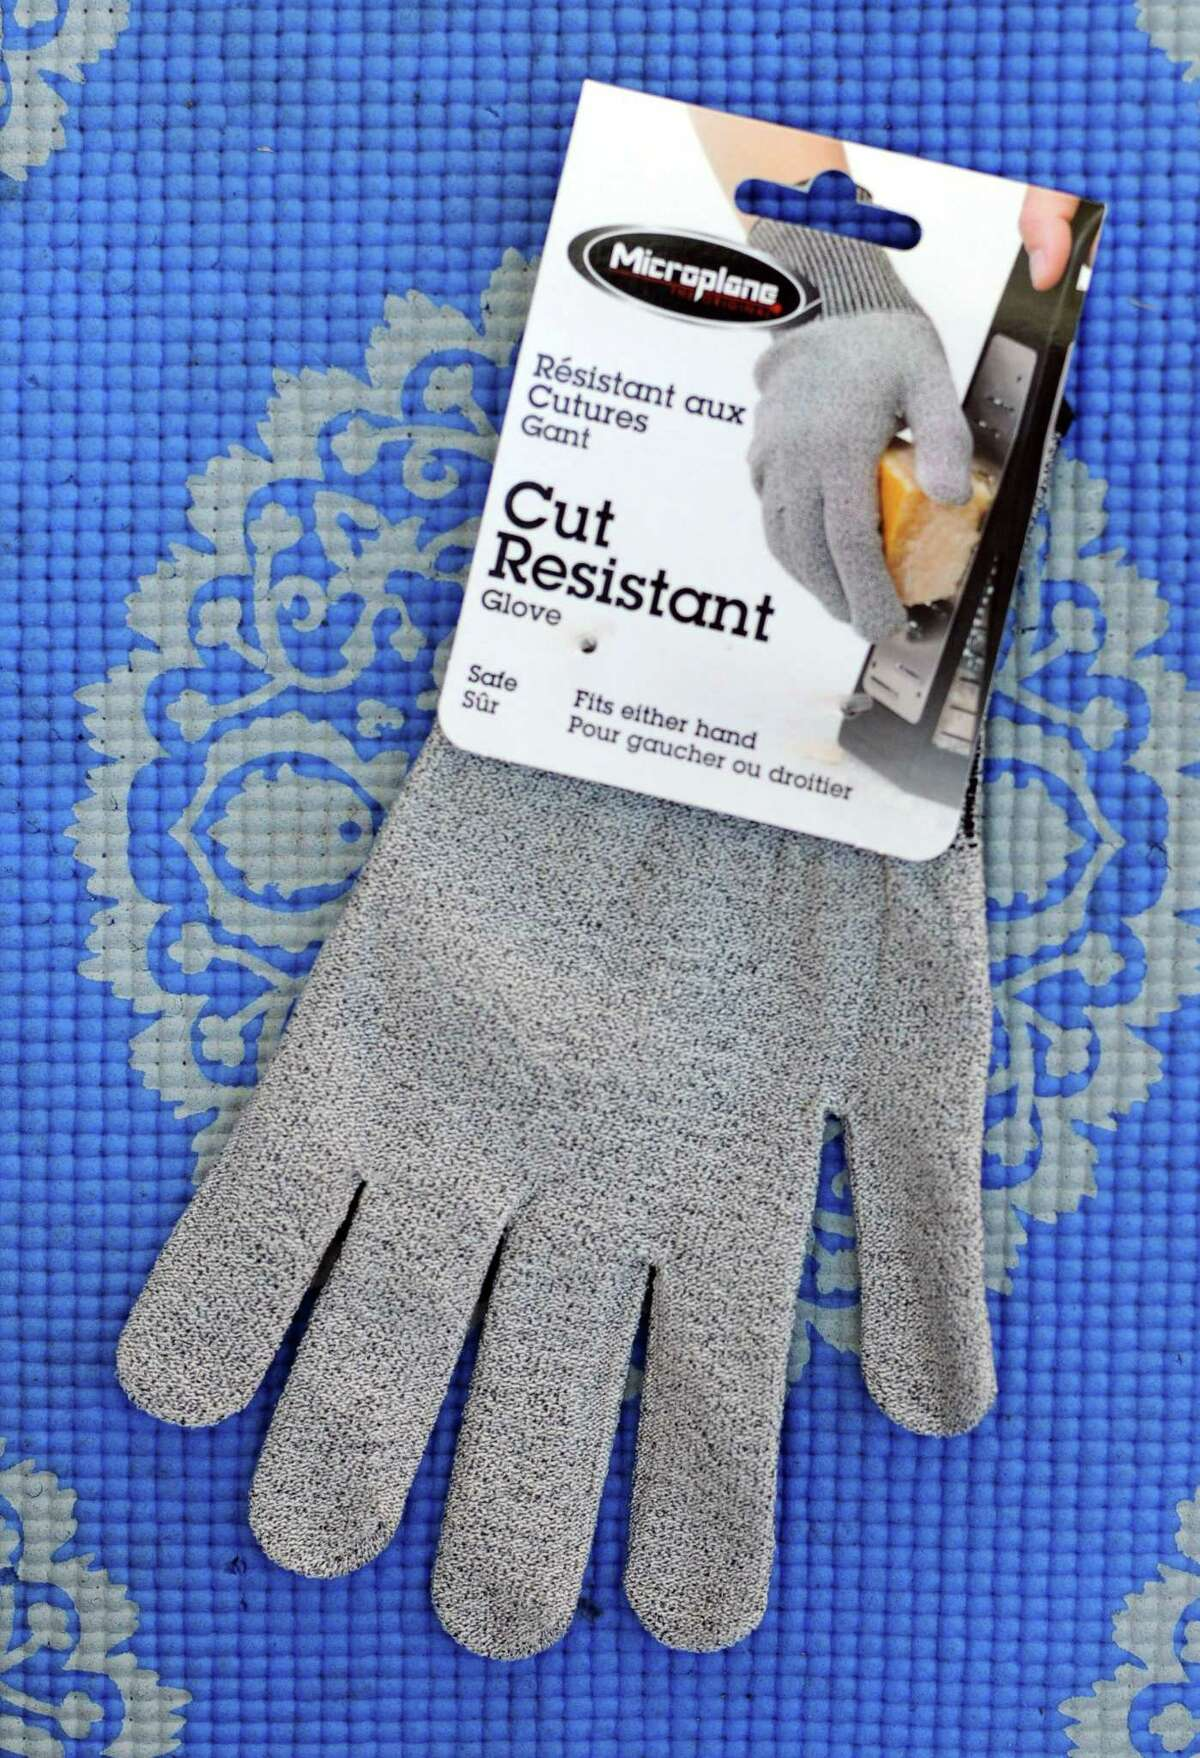 Cut-resistant gloves are a sure way to protect fingertips for anyone using a mandolin slicer.